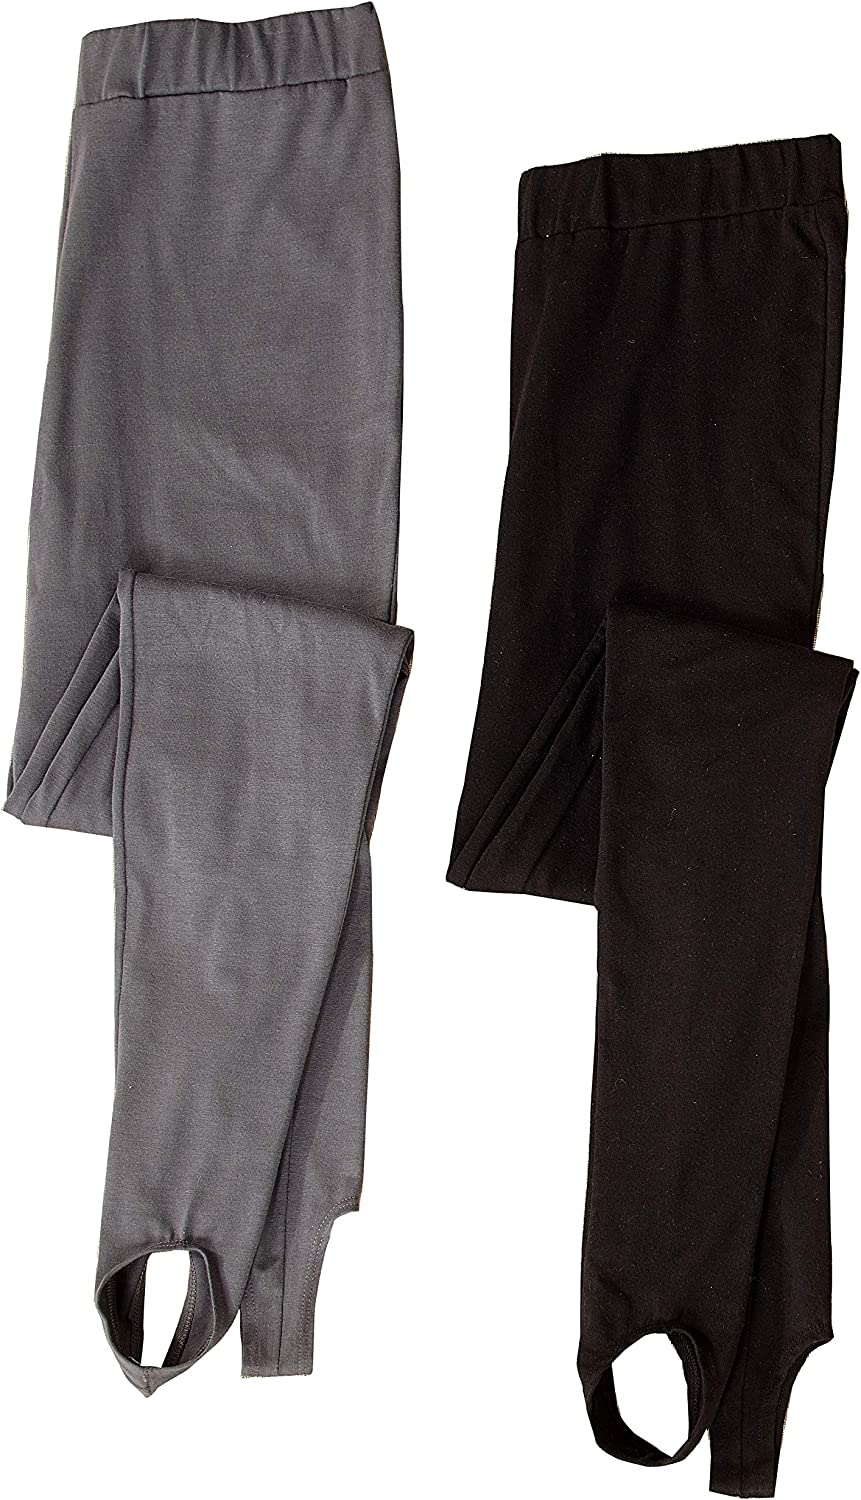 The Lakeside Collection Women's 2-Pack Stirrup Legging Pants